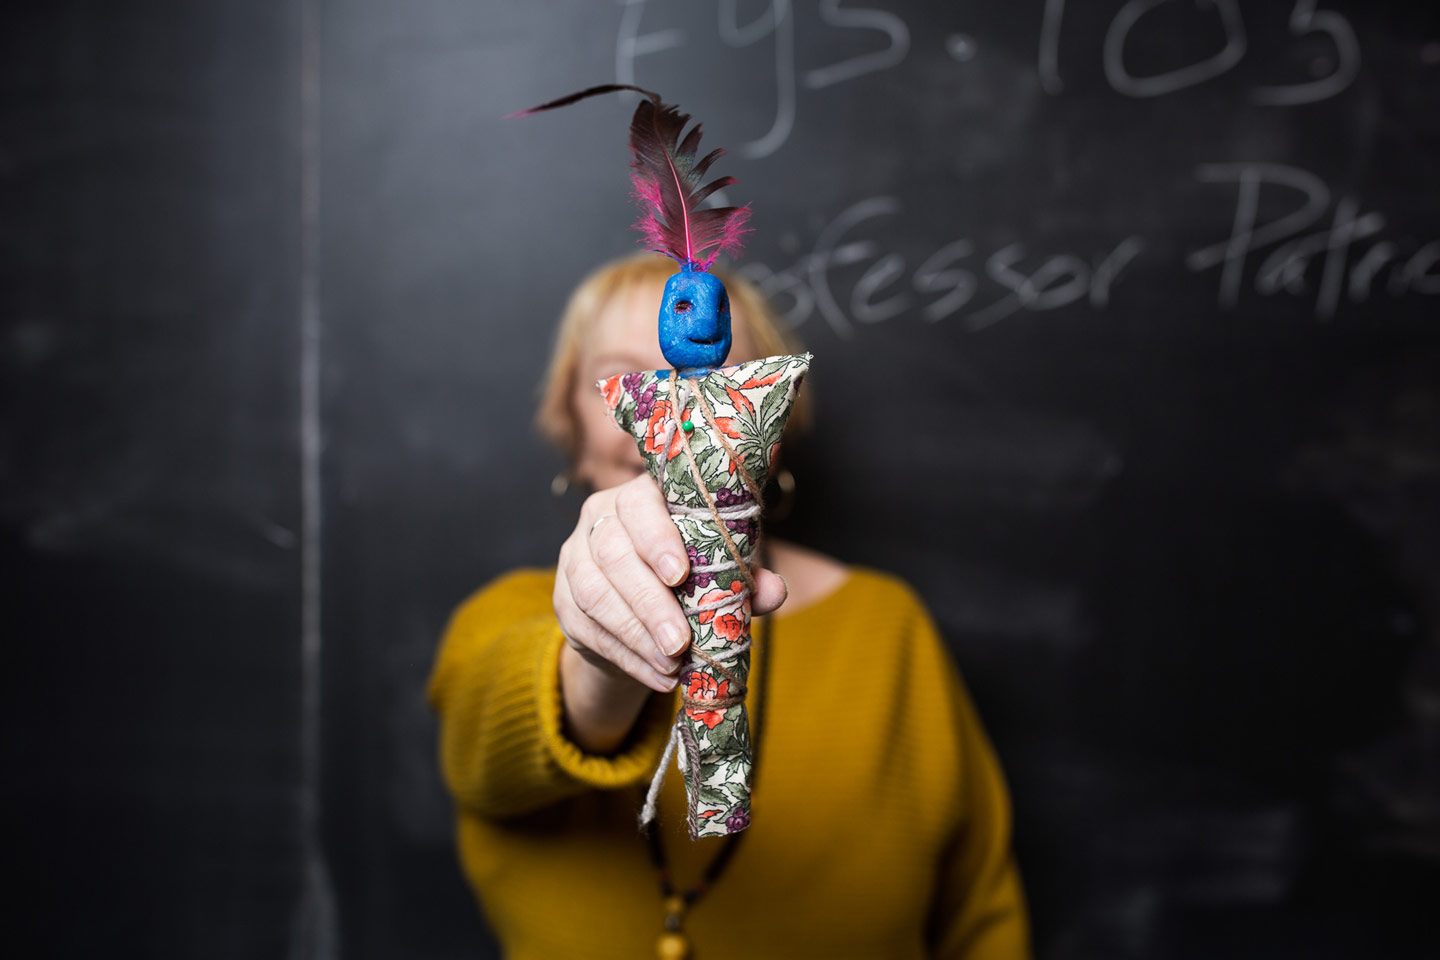 English Professor Pat Donahue holds a voo-doo doll at the front of her classroom blackboard.